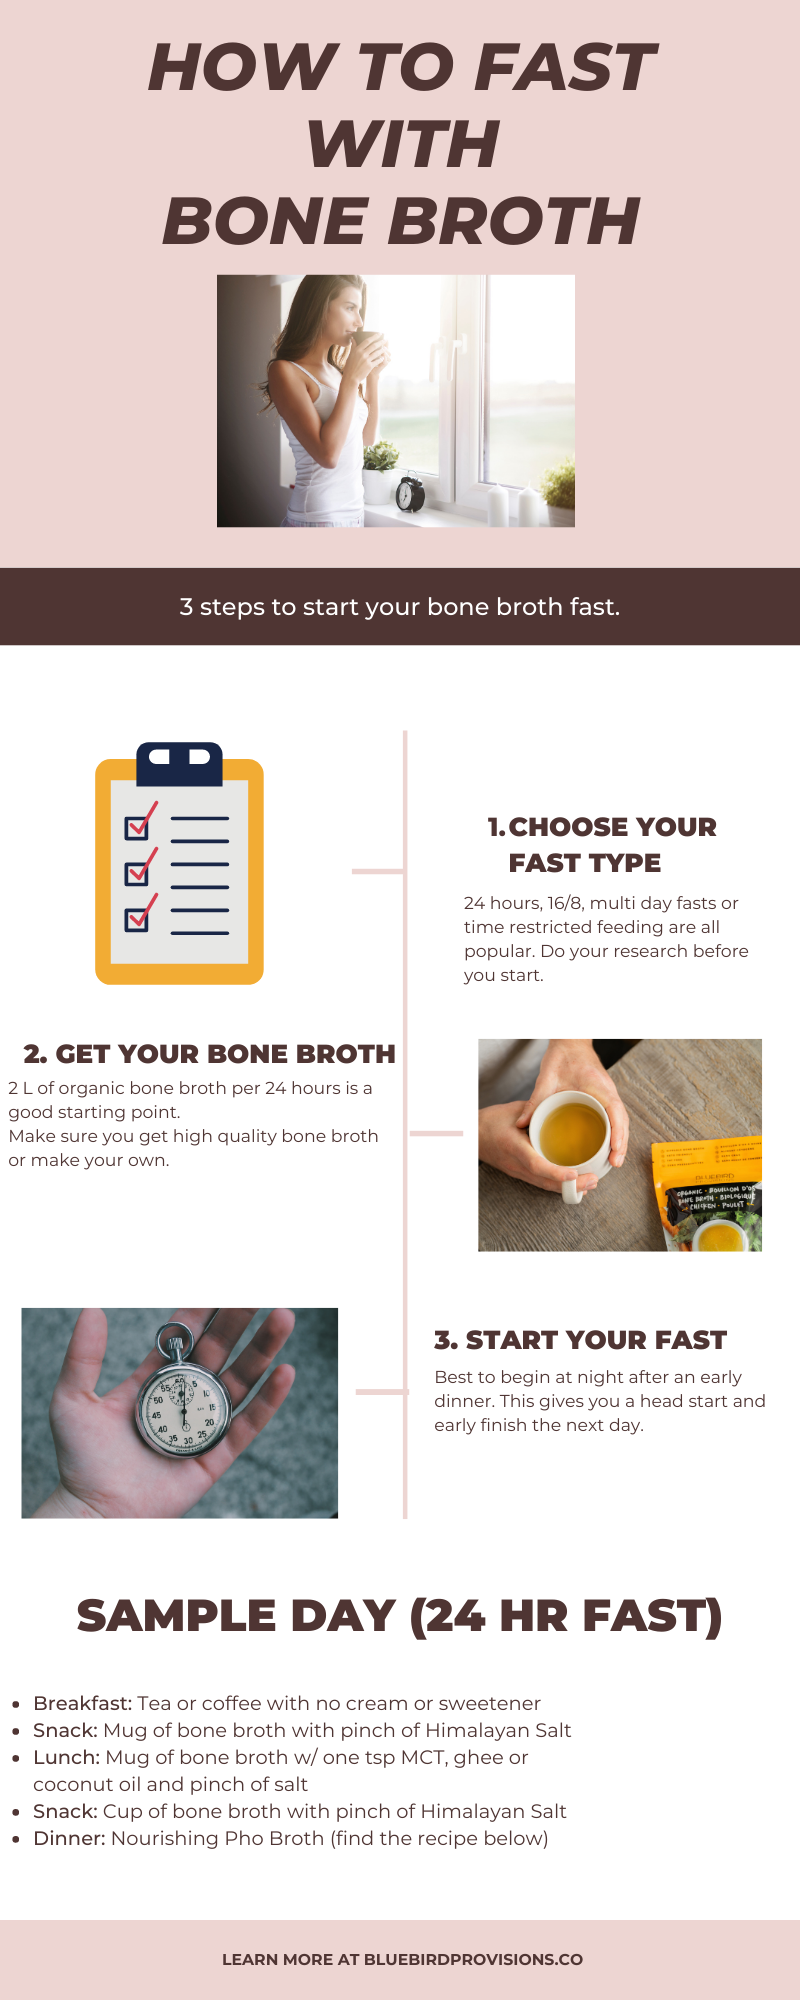 Fasting with Bone Broth Infographic